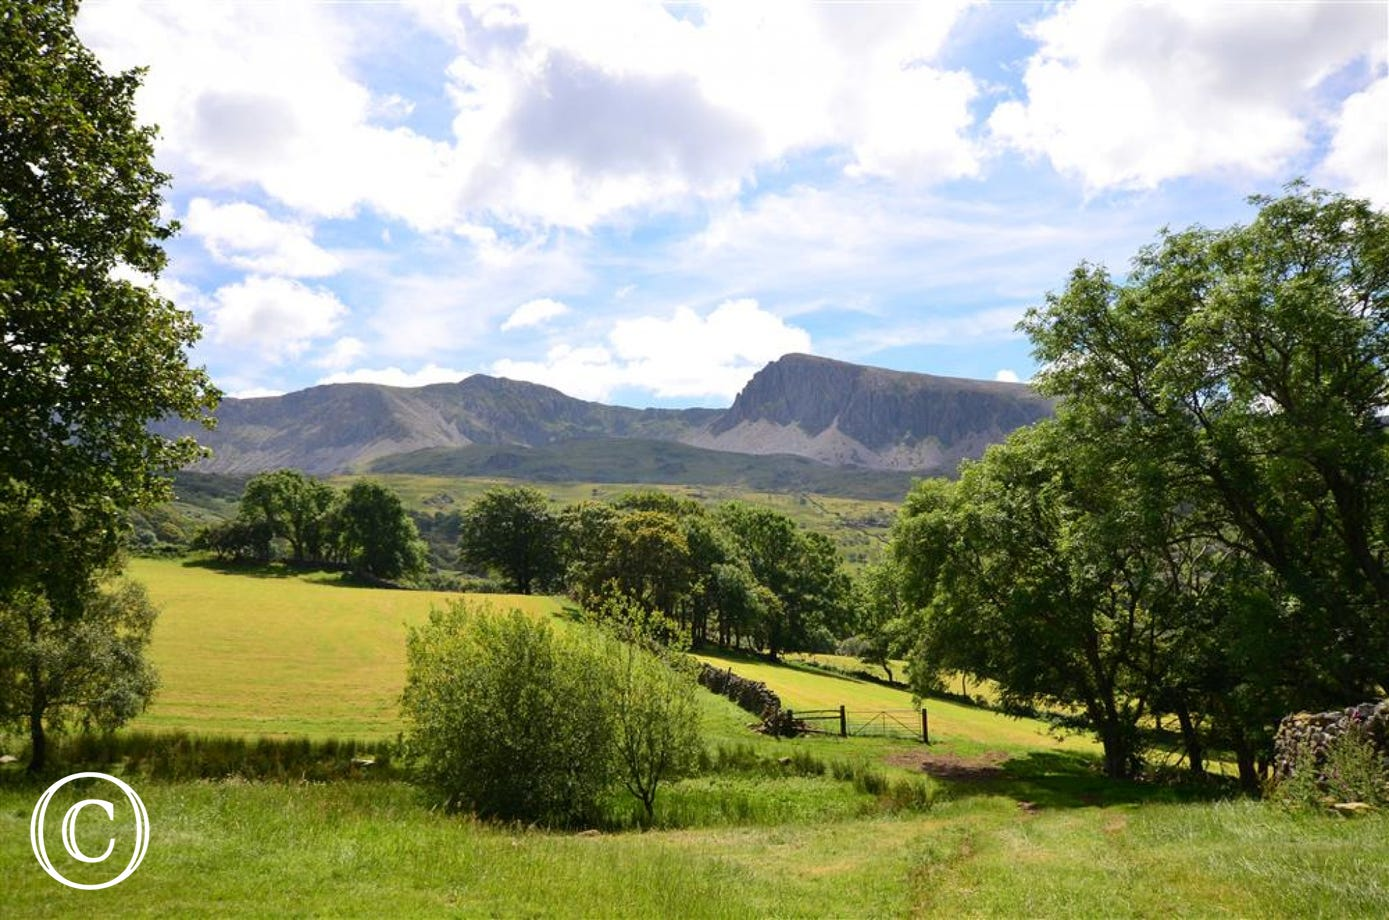 The farm sits on the lower slopes of stunning Cadair Idris